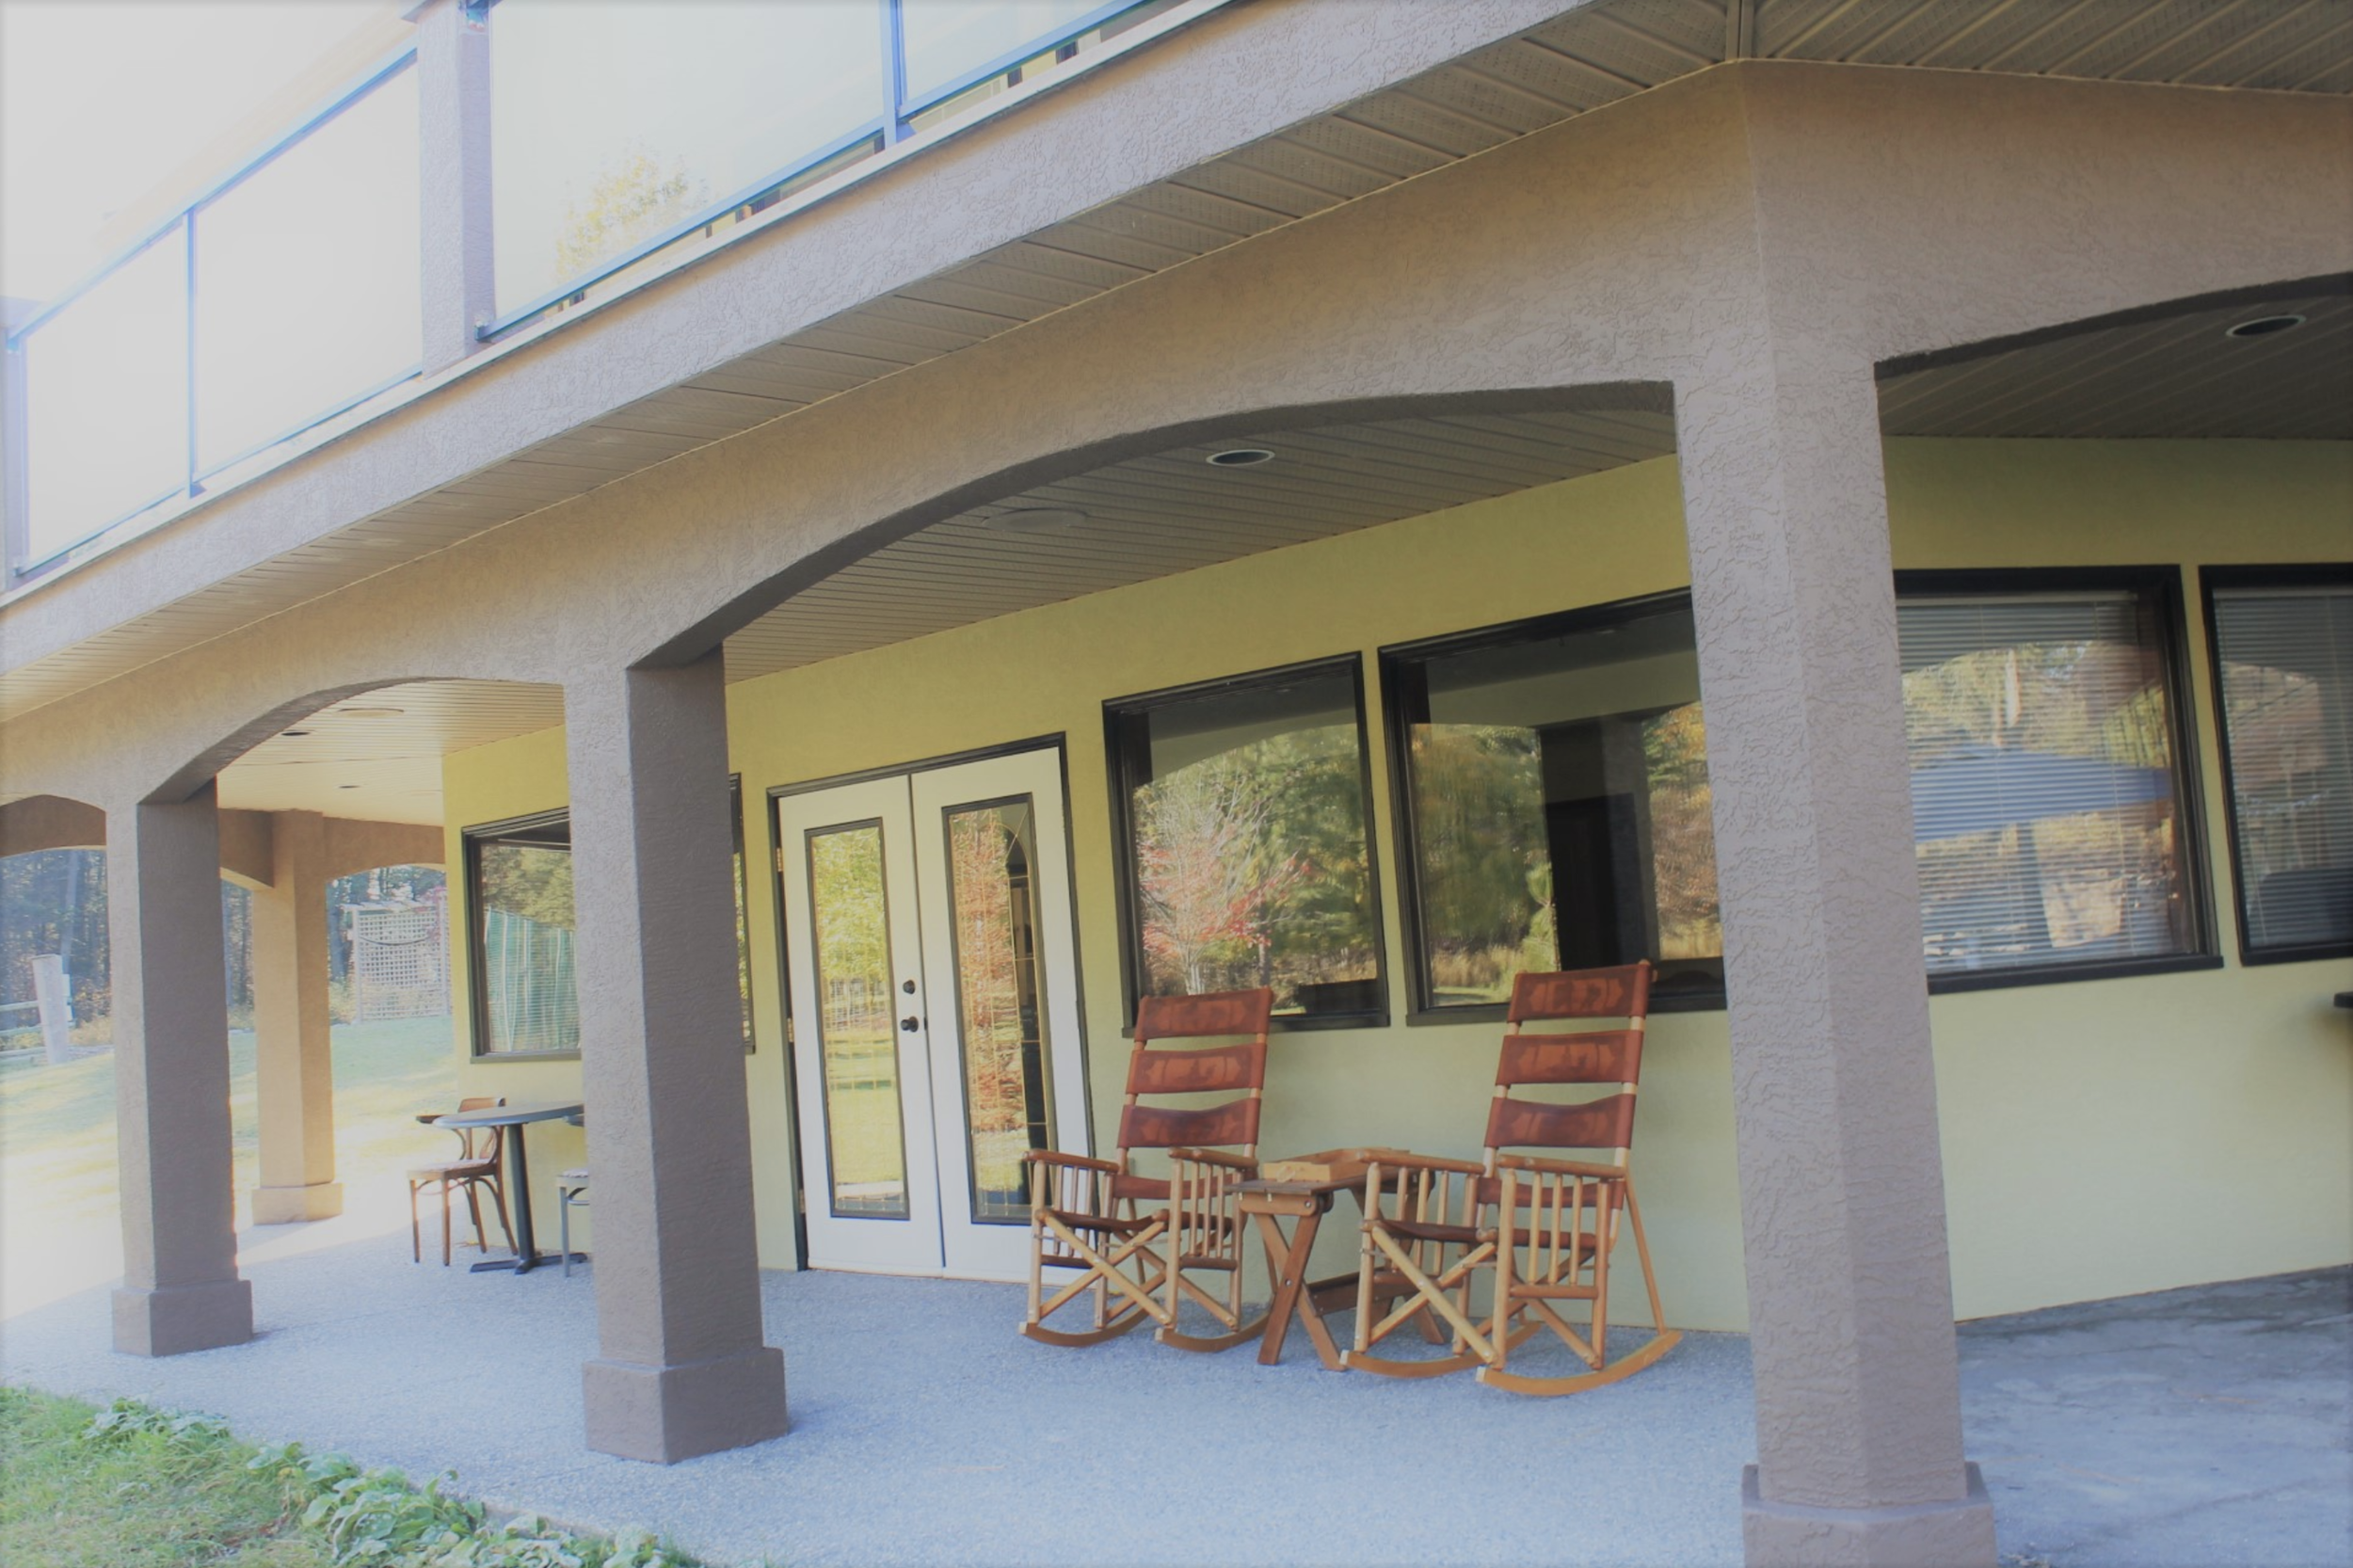 event space - 1,450 square feet of space including a prep kitchen and a large washroom. Enjoy watching the deer play in the meadow from your wraparound ground-level patio.